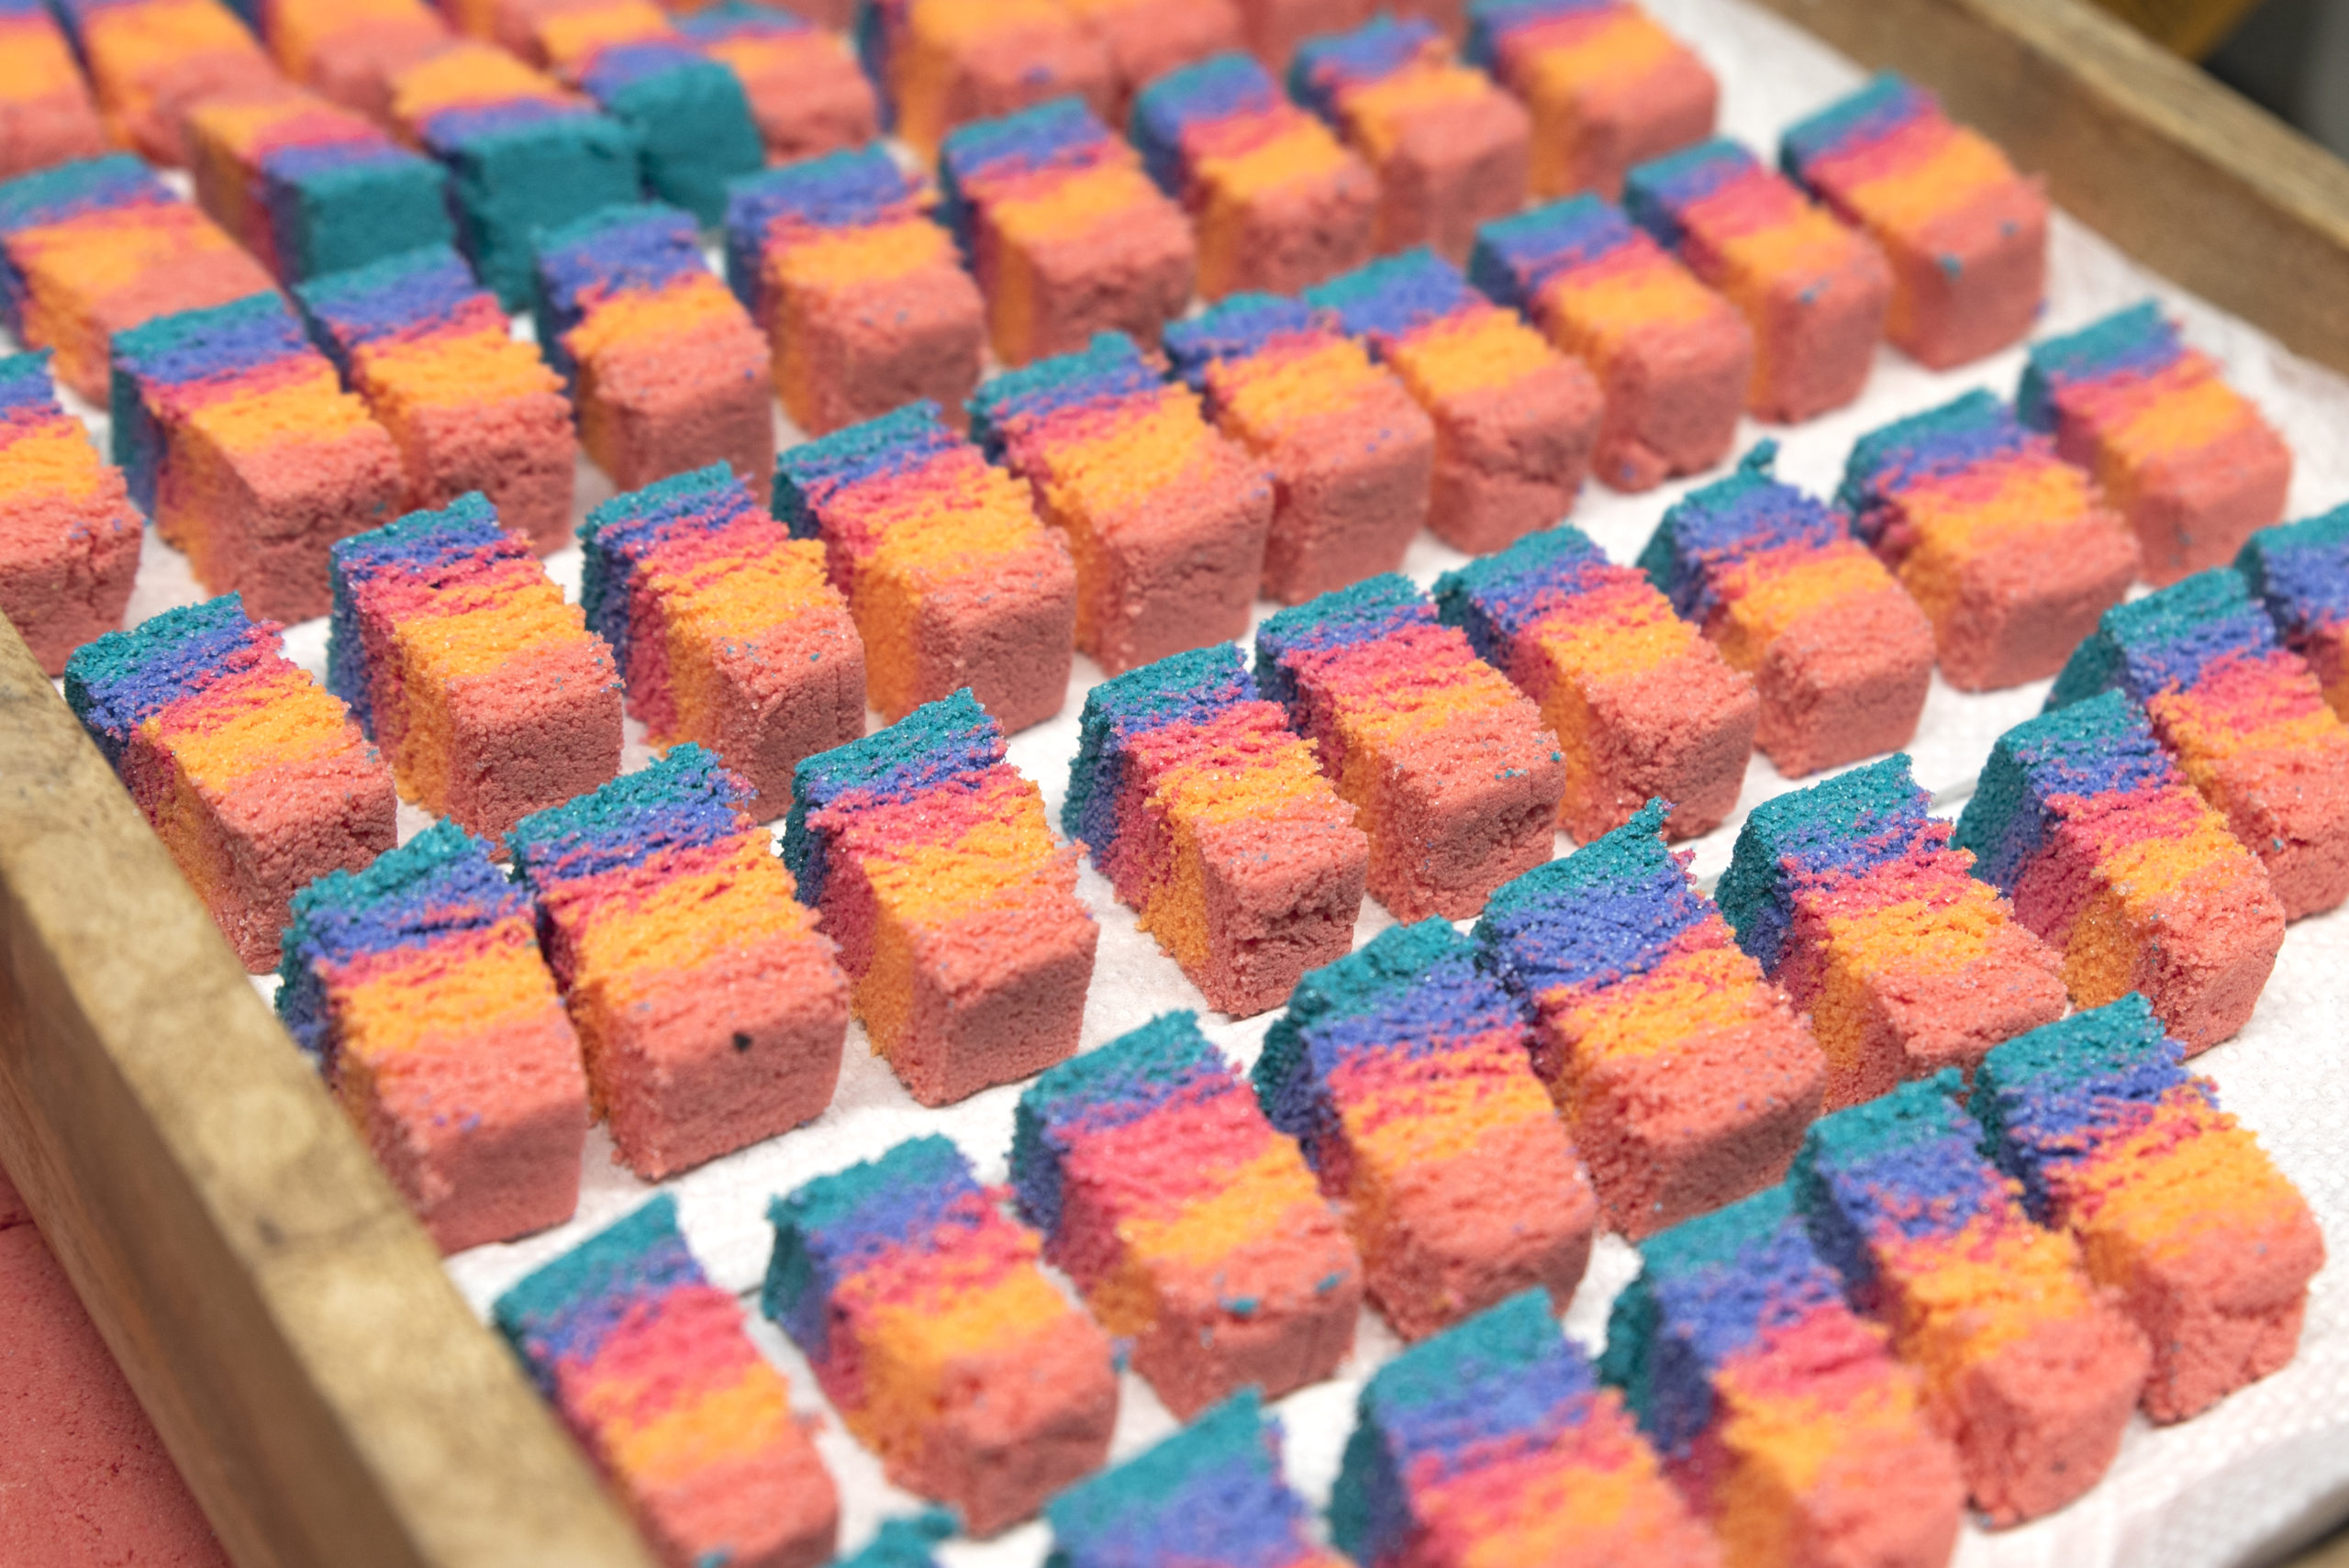 Creating Multi Colored Bar Embeds for Bath Bombs